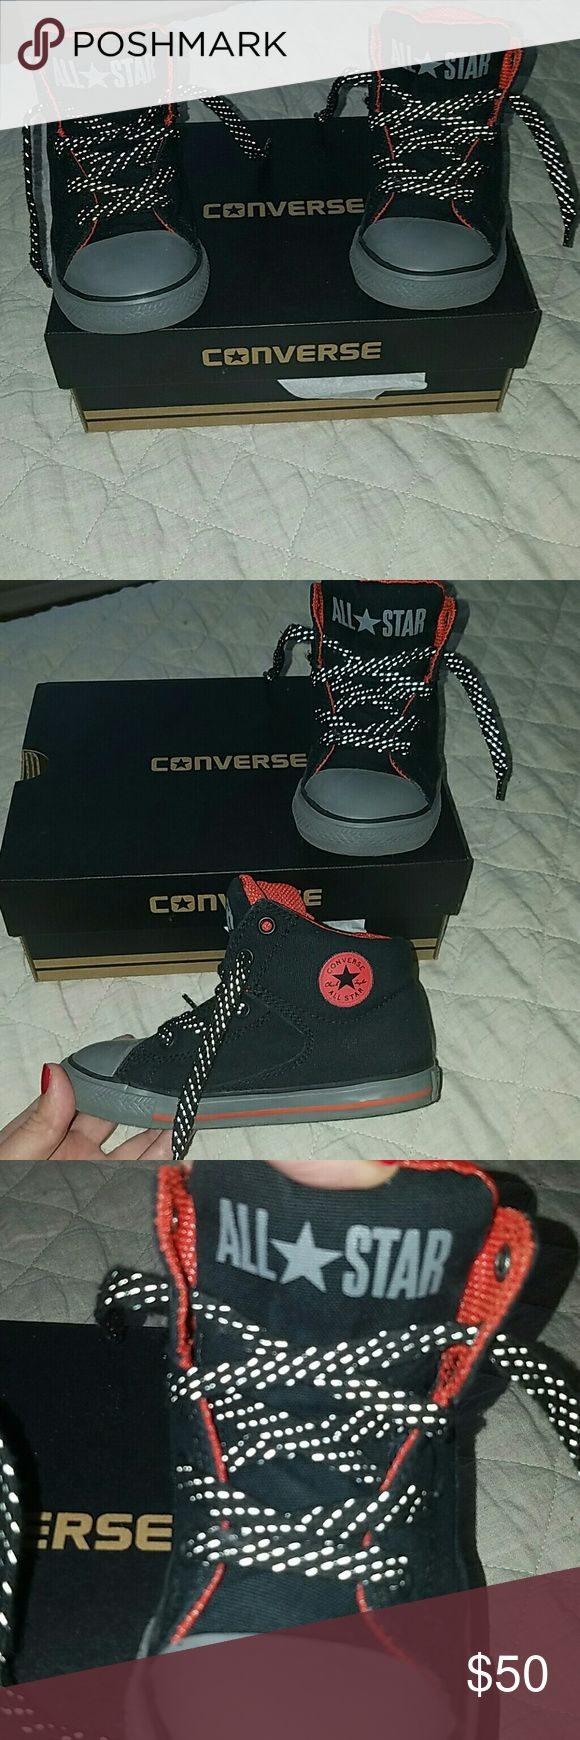 Converse Black High Tops, Gray/Orange Trim Adorable and durable black high tops by Converse.  Gray rubber sole and detailing.  Bright orange interior and Converse logo on side.  Black laces are speckled with gray - they look really cool!  These sneakers are water repellant, so they're great for the Winter.    Darn my son for growing so fast, he never gets a chance to use half the stuff he grows out of!!  Maybe I shop too much.....? NAAAAAAAH!!  😆  Brand new in box, just trying to make back…